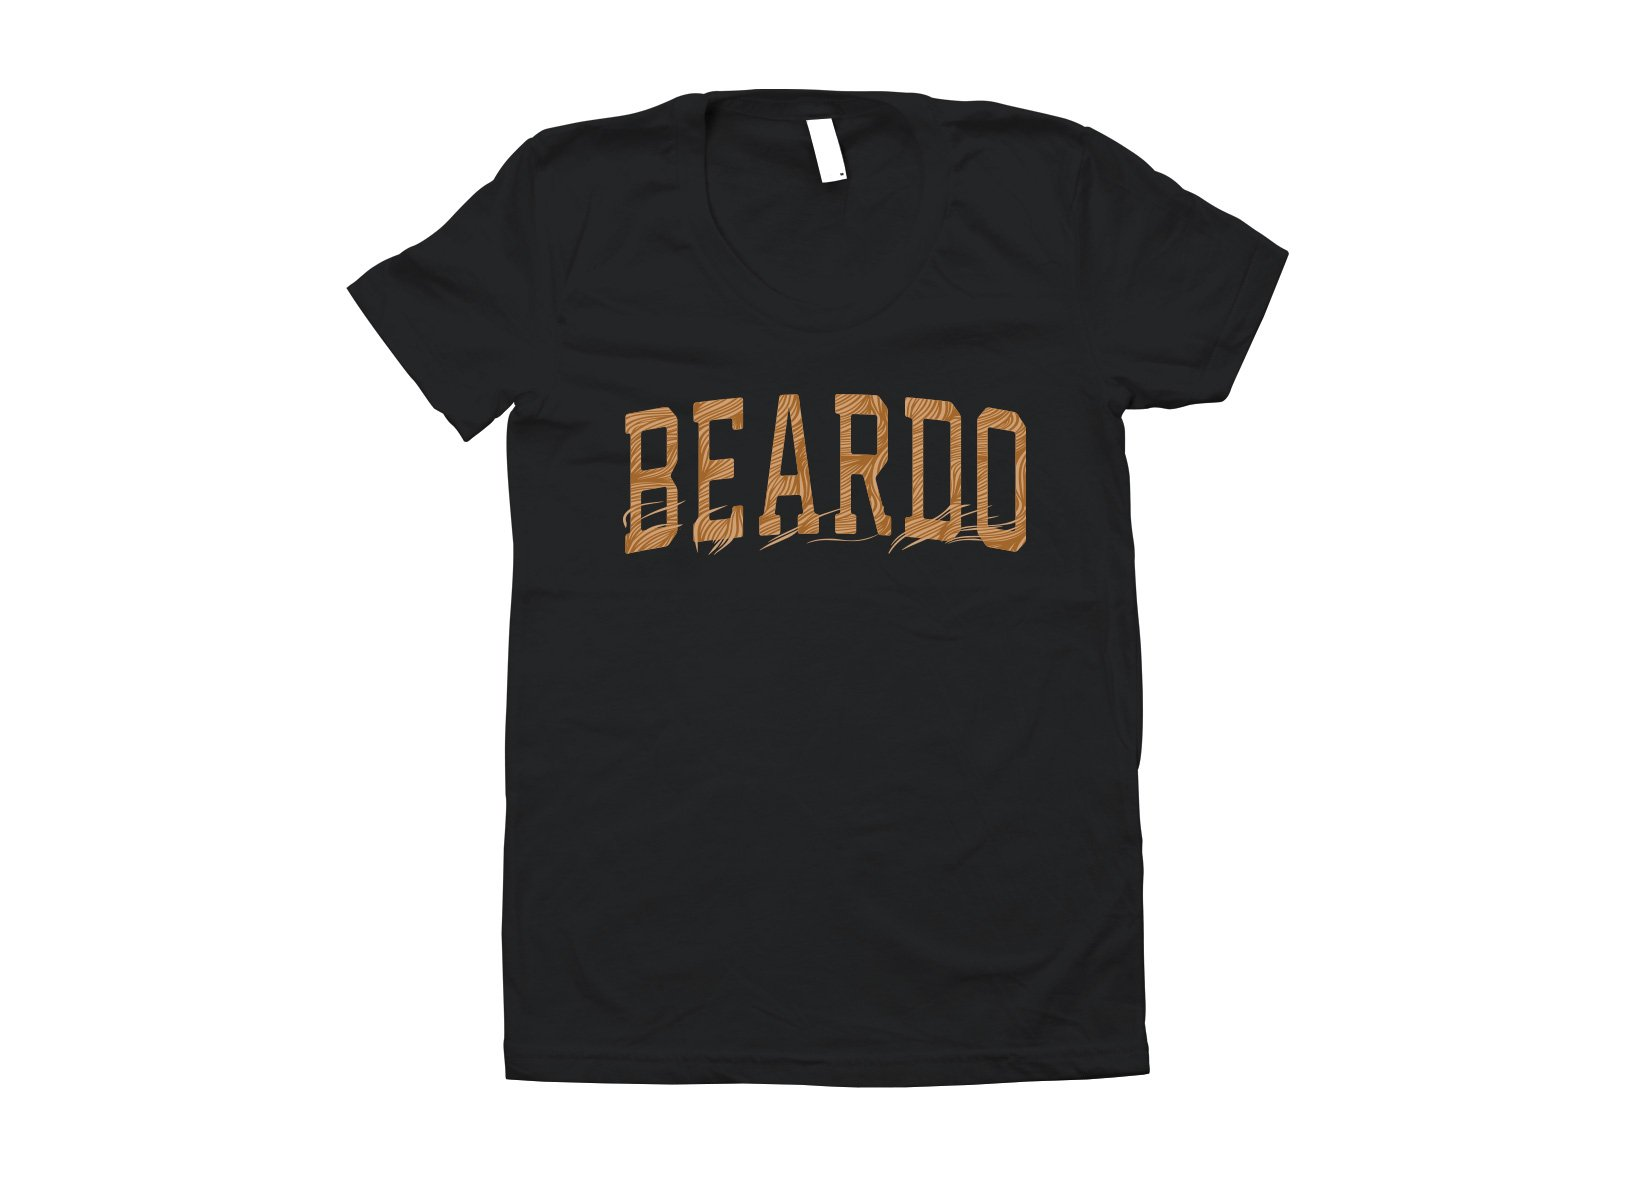 Beardo on Juniors T-Shirt